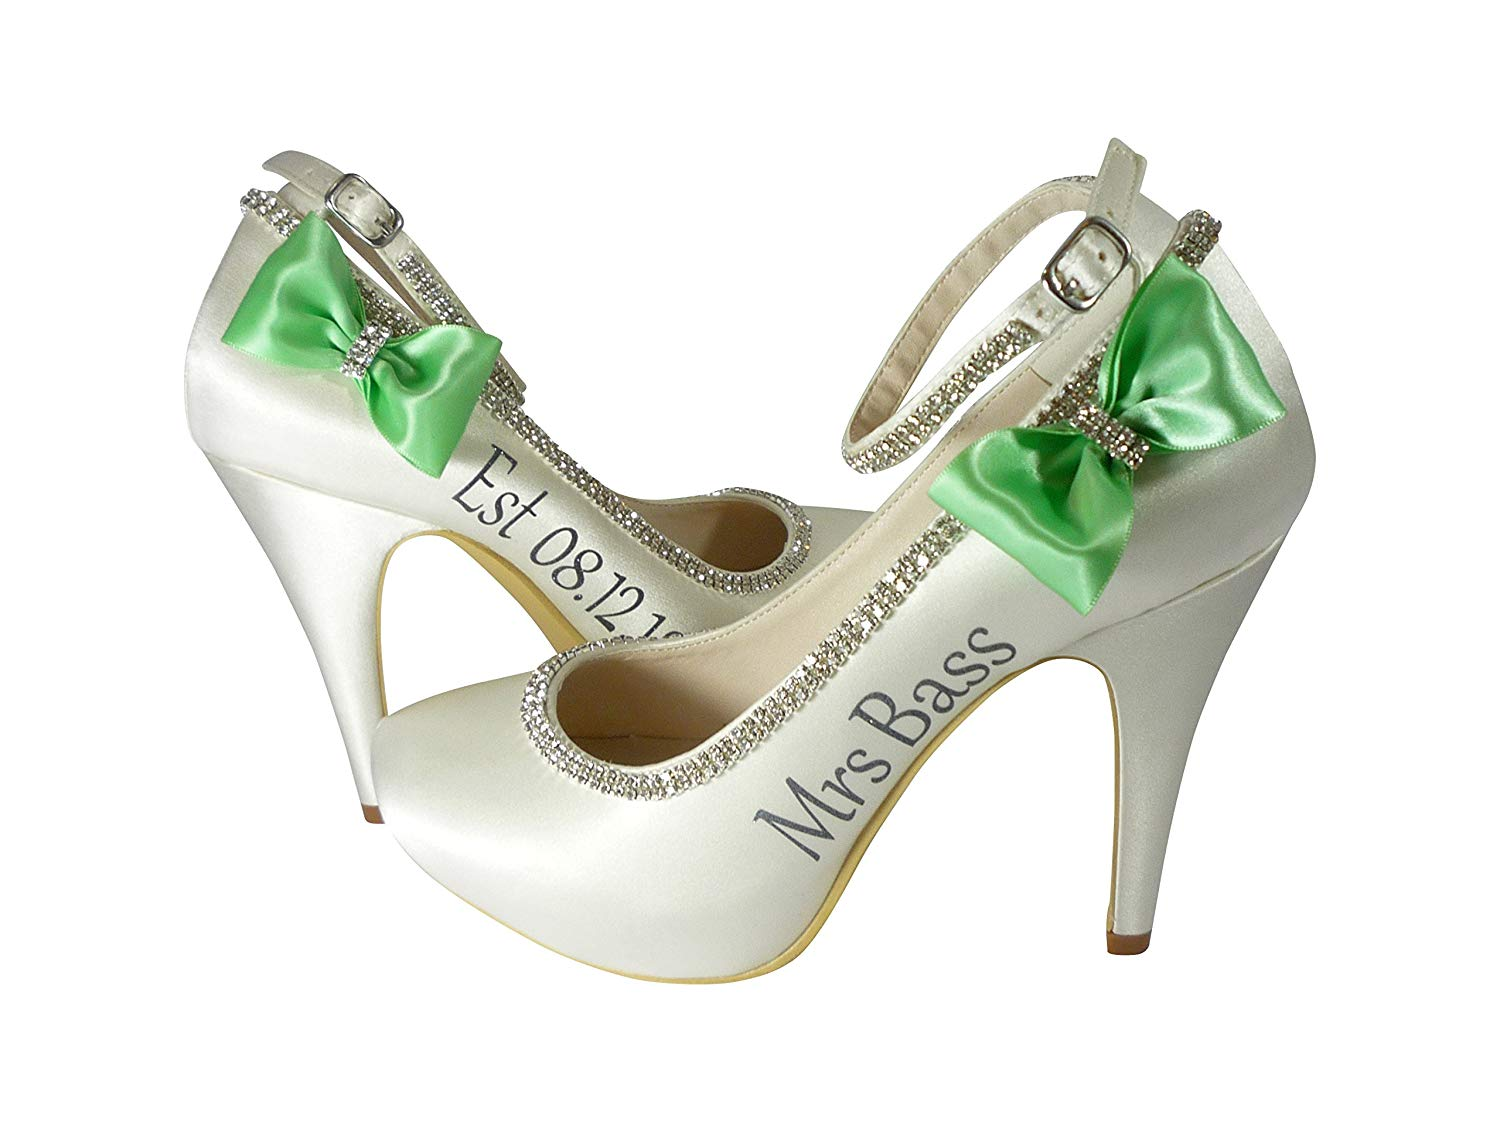 f25d568540d2bf Personalized Wedding Heels with Angle Strap